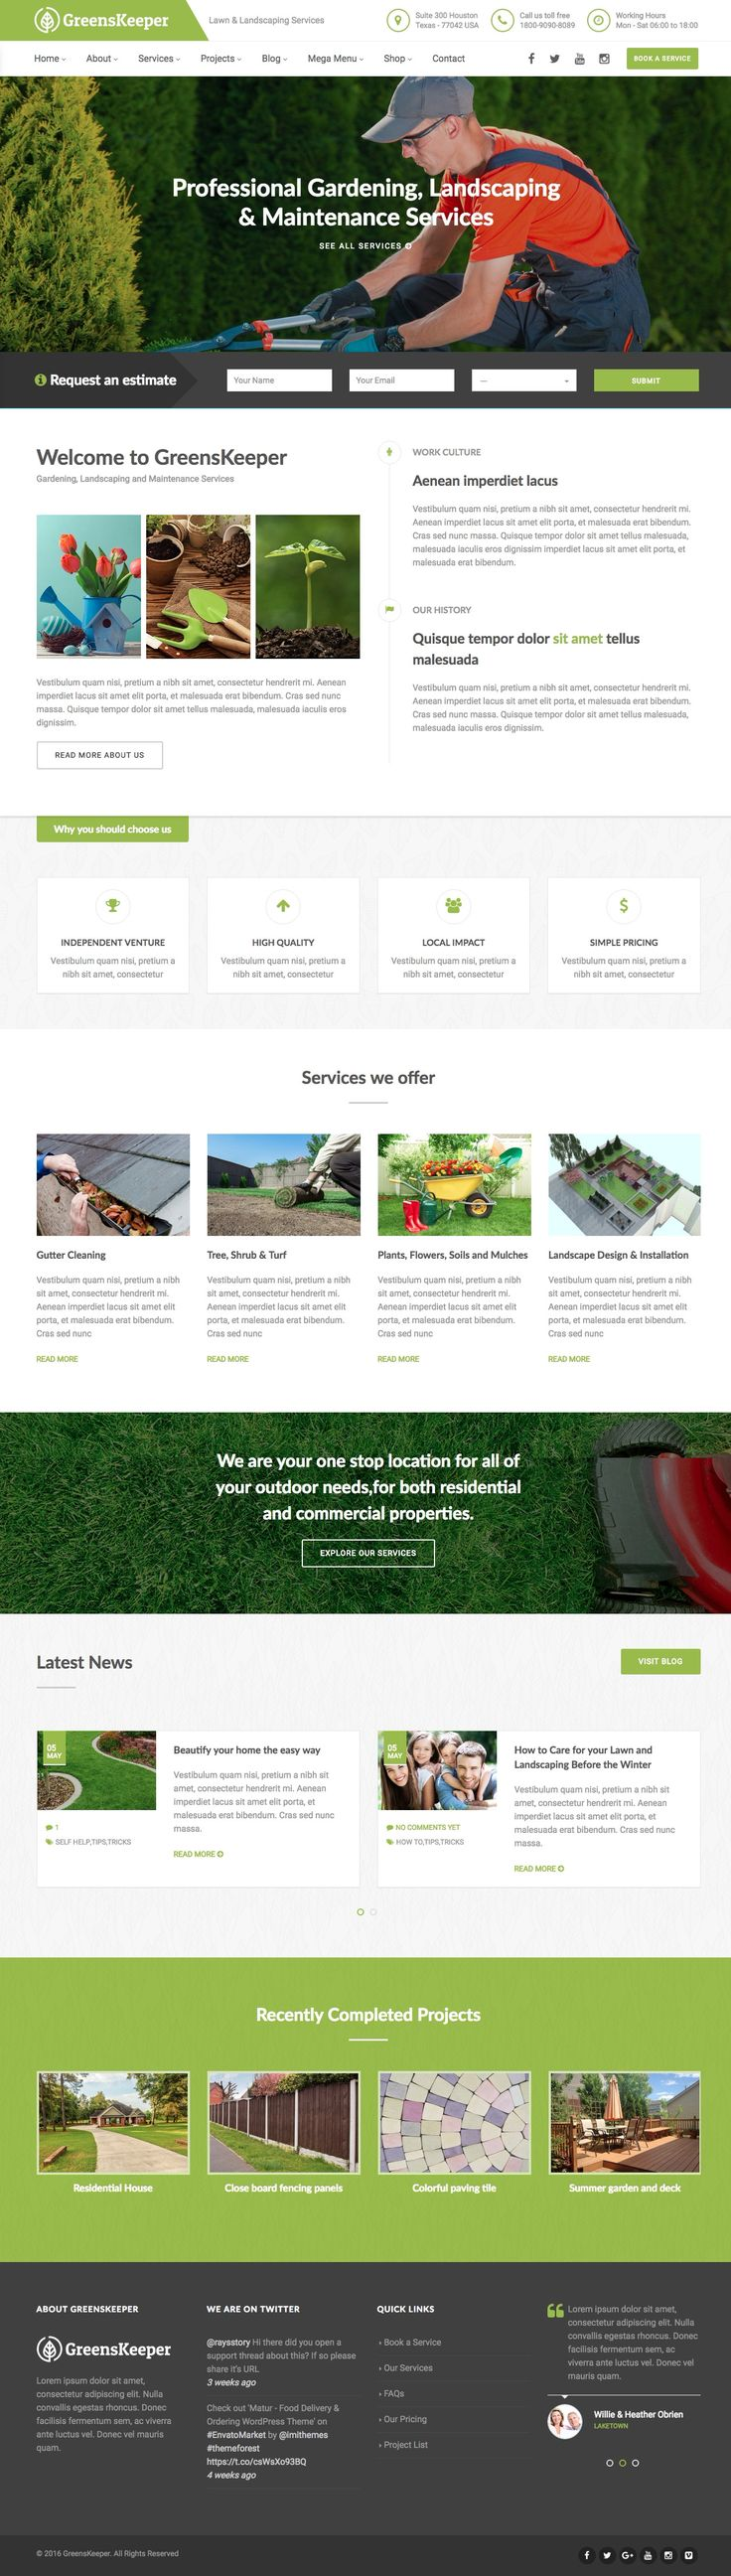 GreensKeeper is a fully functional WordPress theme beautifully crafted & developed for gardening and landscaping services websites but it could also served well for corporate business website. Visit: catchytheme.com for more example